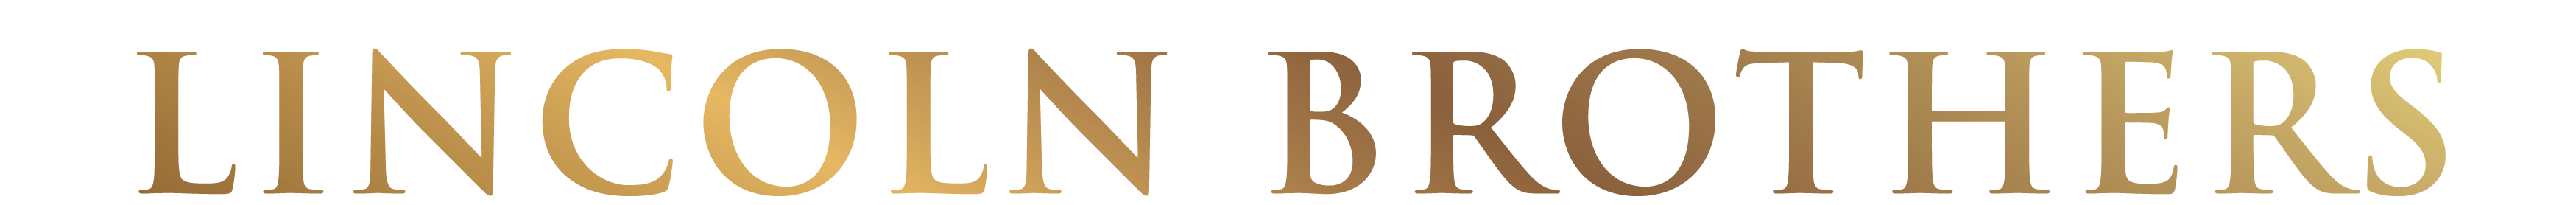 LINCOLN BROTHERS CO Logo